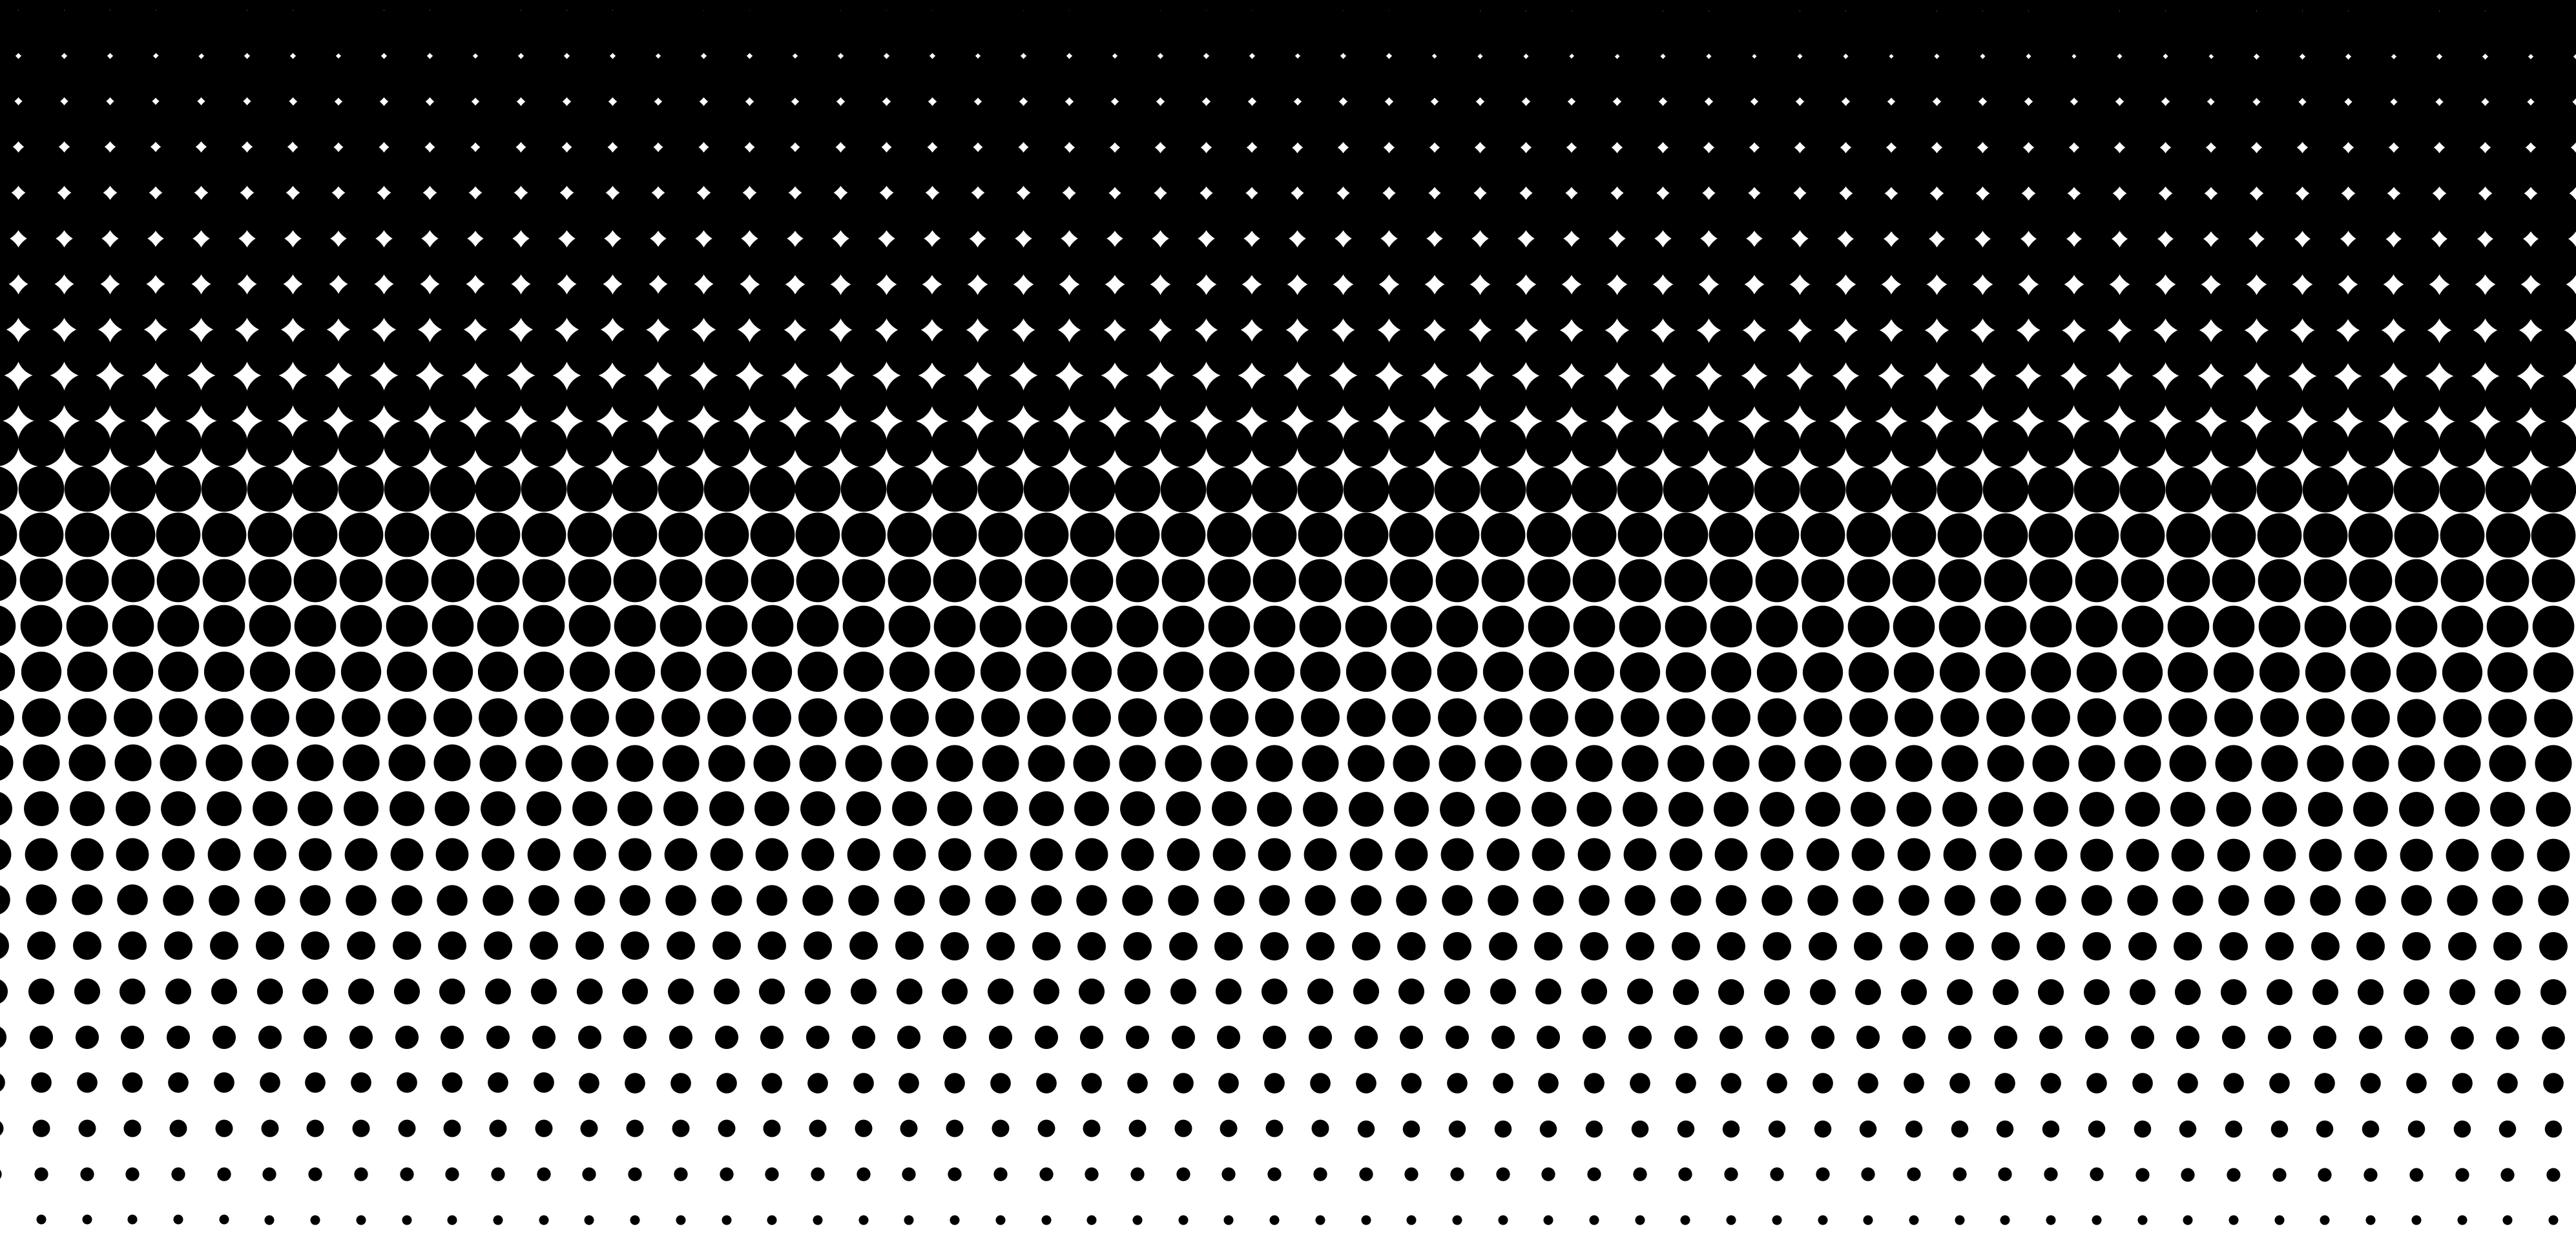 Background clipart black and white. Wallpaper desktop for pc